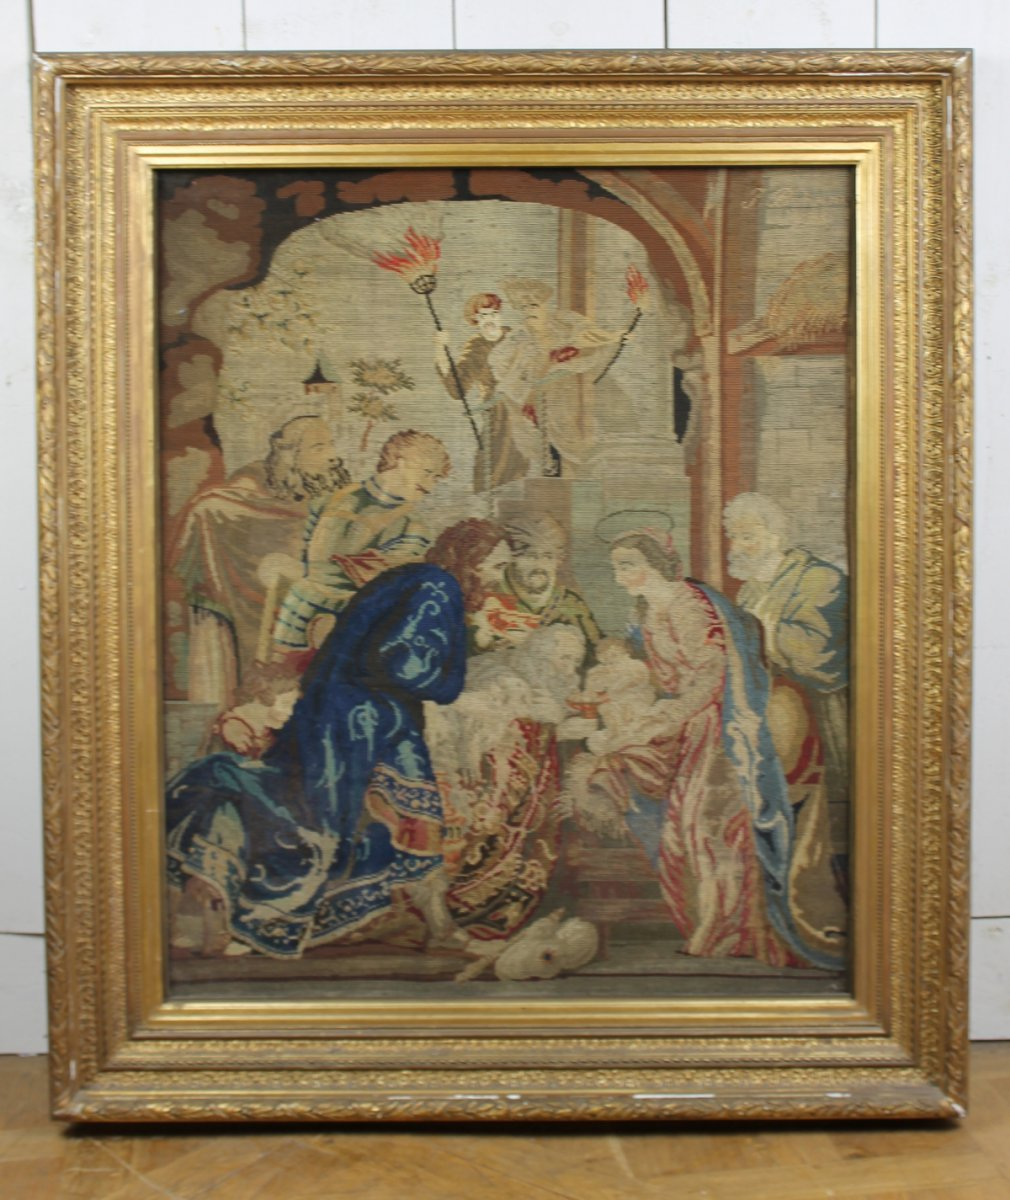 Framed Tapestry, 18th